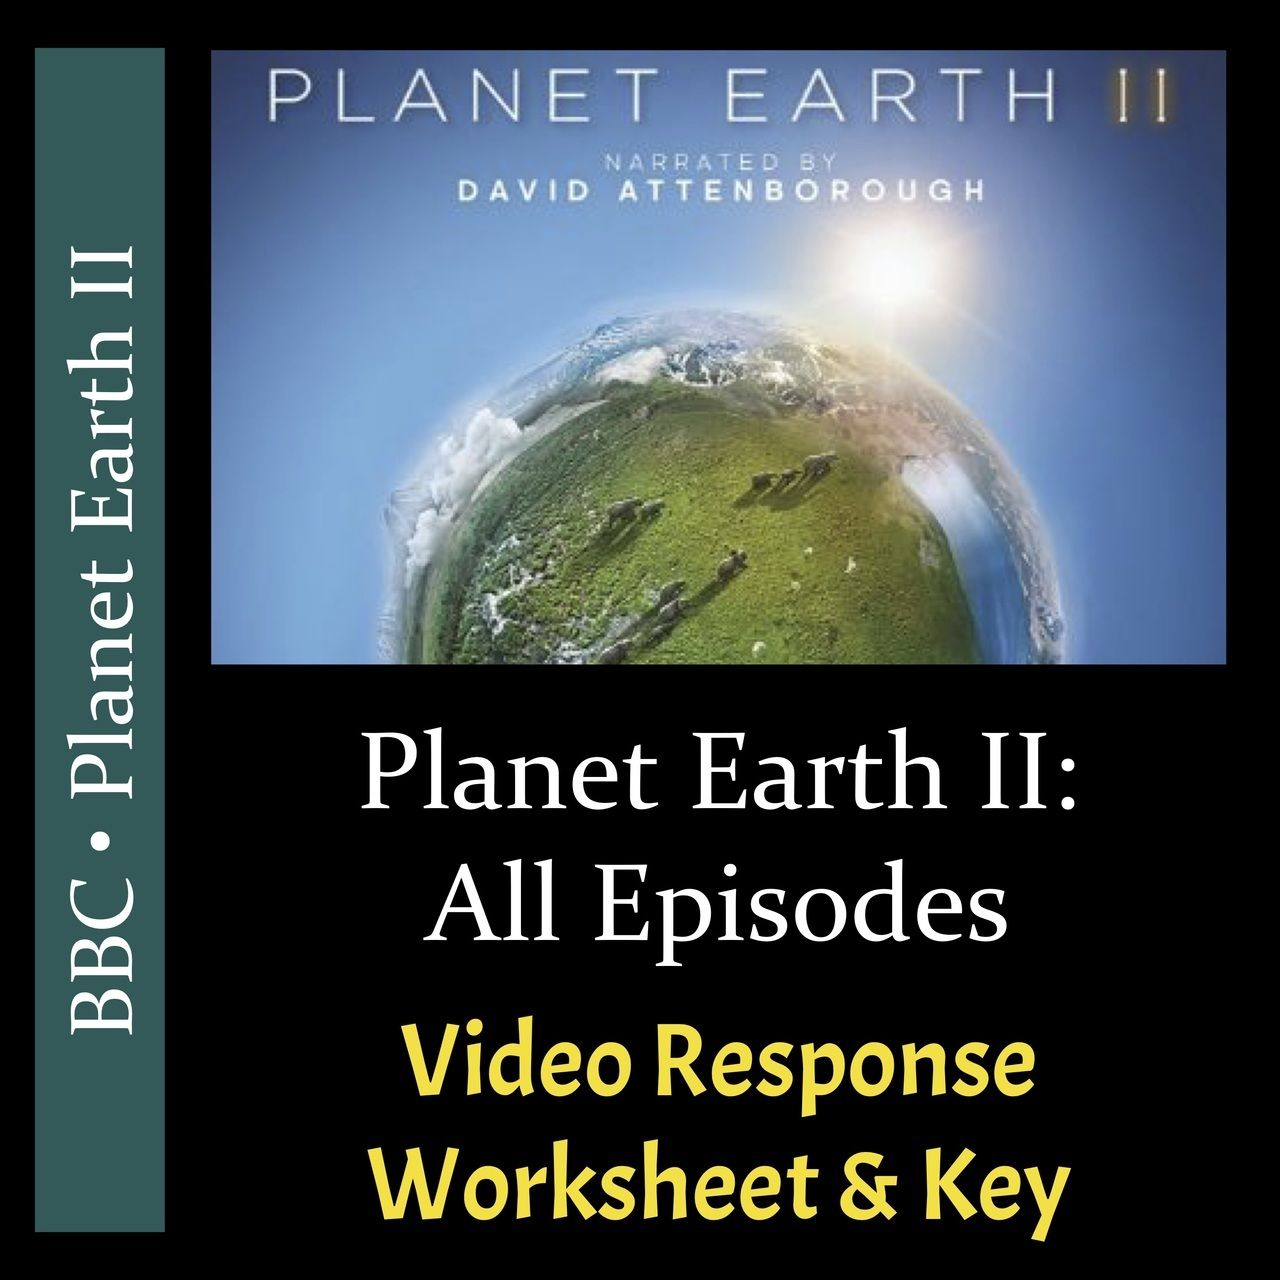 Planet Earth 2 All Episodes Video Response Worksheets Keys Bundle Editable Amped Up Learning Planet Earth 2 Earth Science Lessons Planets [ 1280 x 1280 Pixel ]